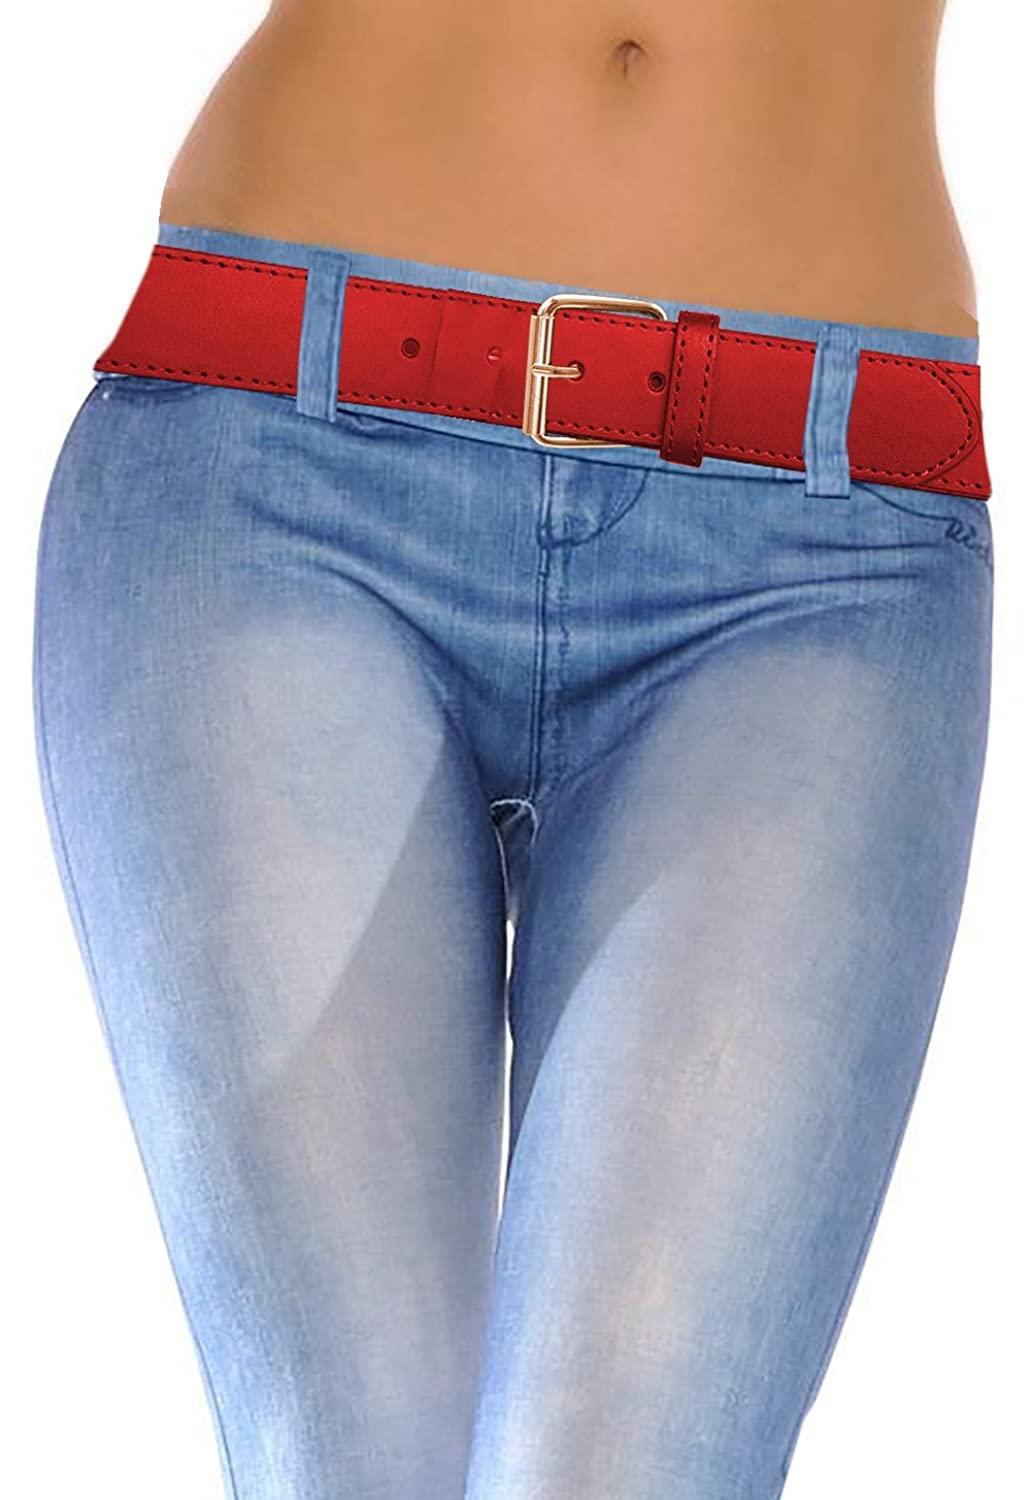 LUNA Top Quality Snap-On STITCH Bronze Buckle Thick Wide Leather Belt - Red - 4X Large